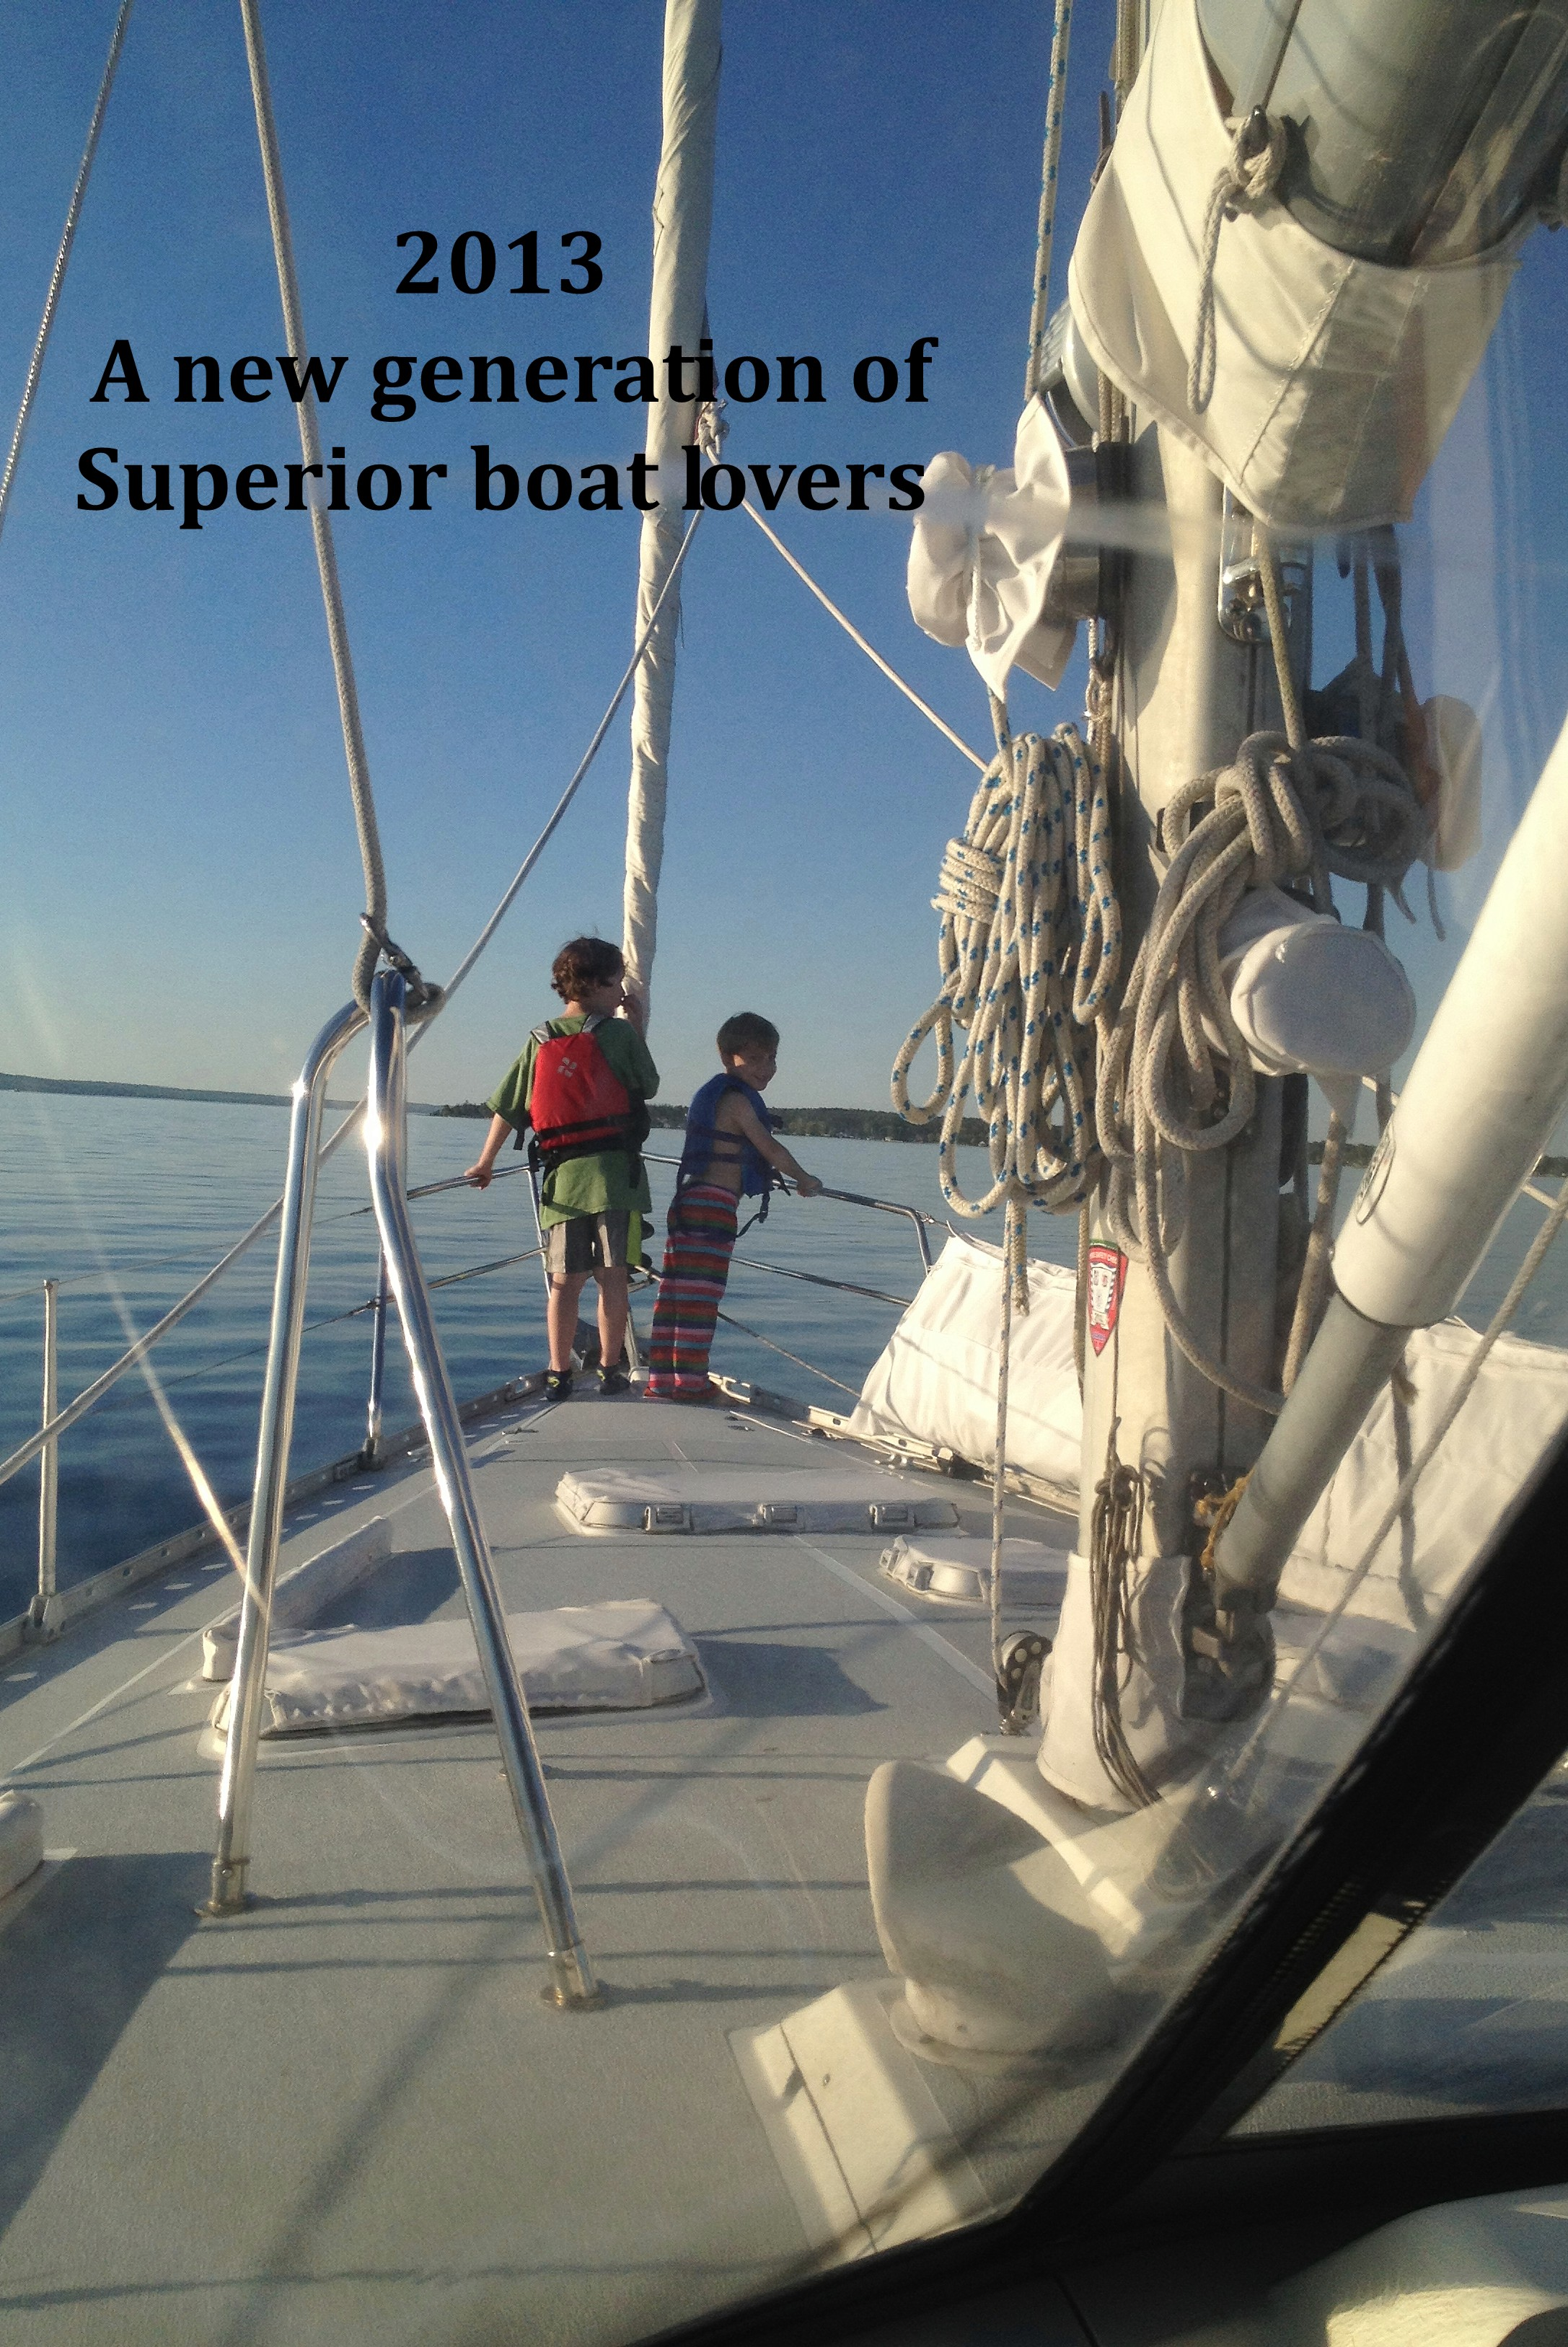 2013 Next generation of Superior boat lovers.JPG